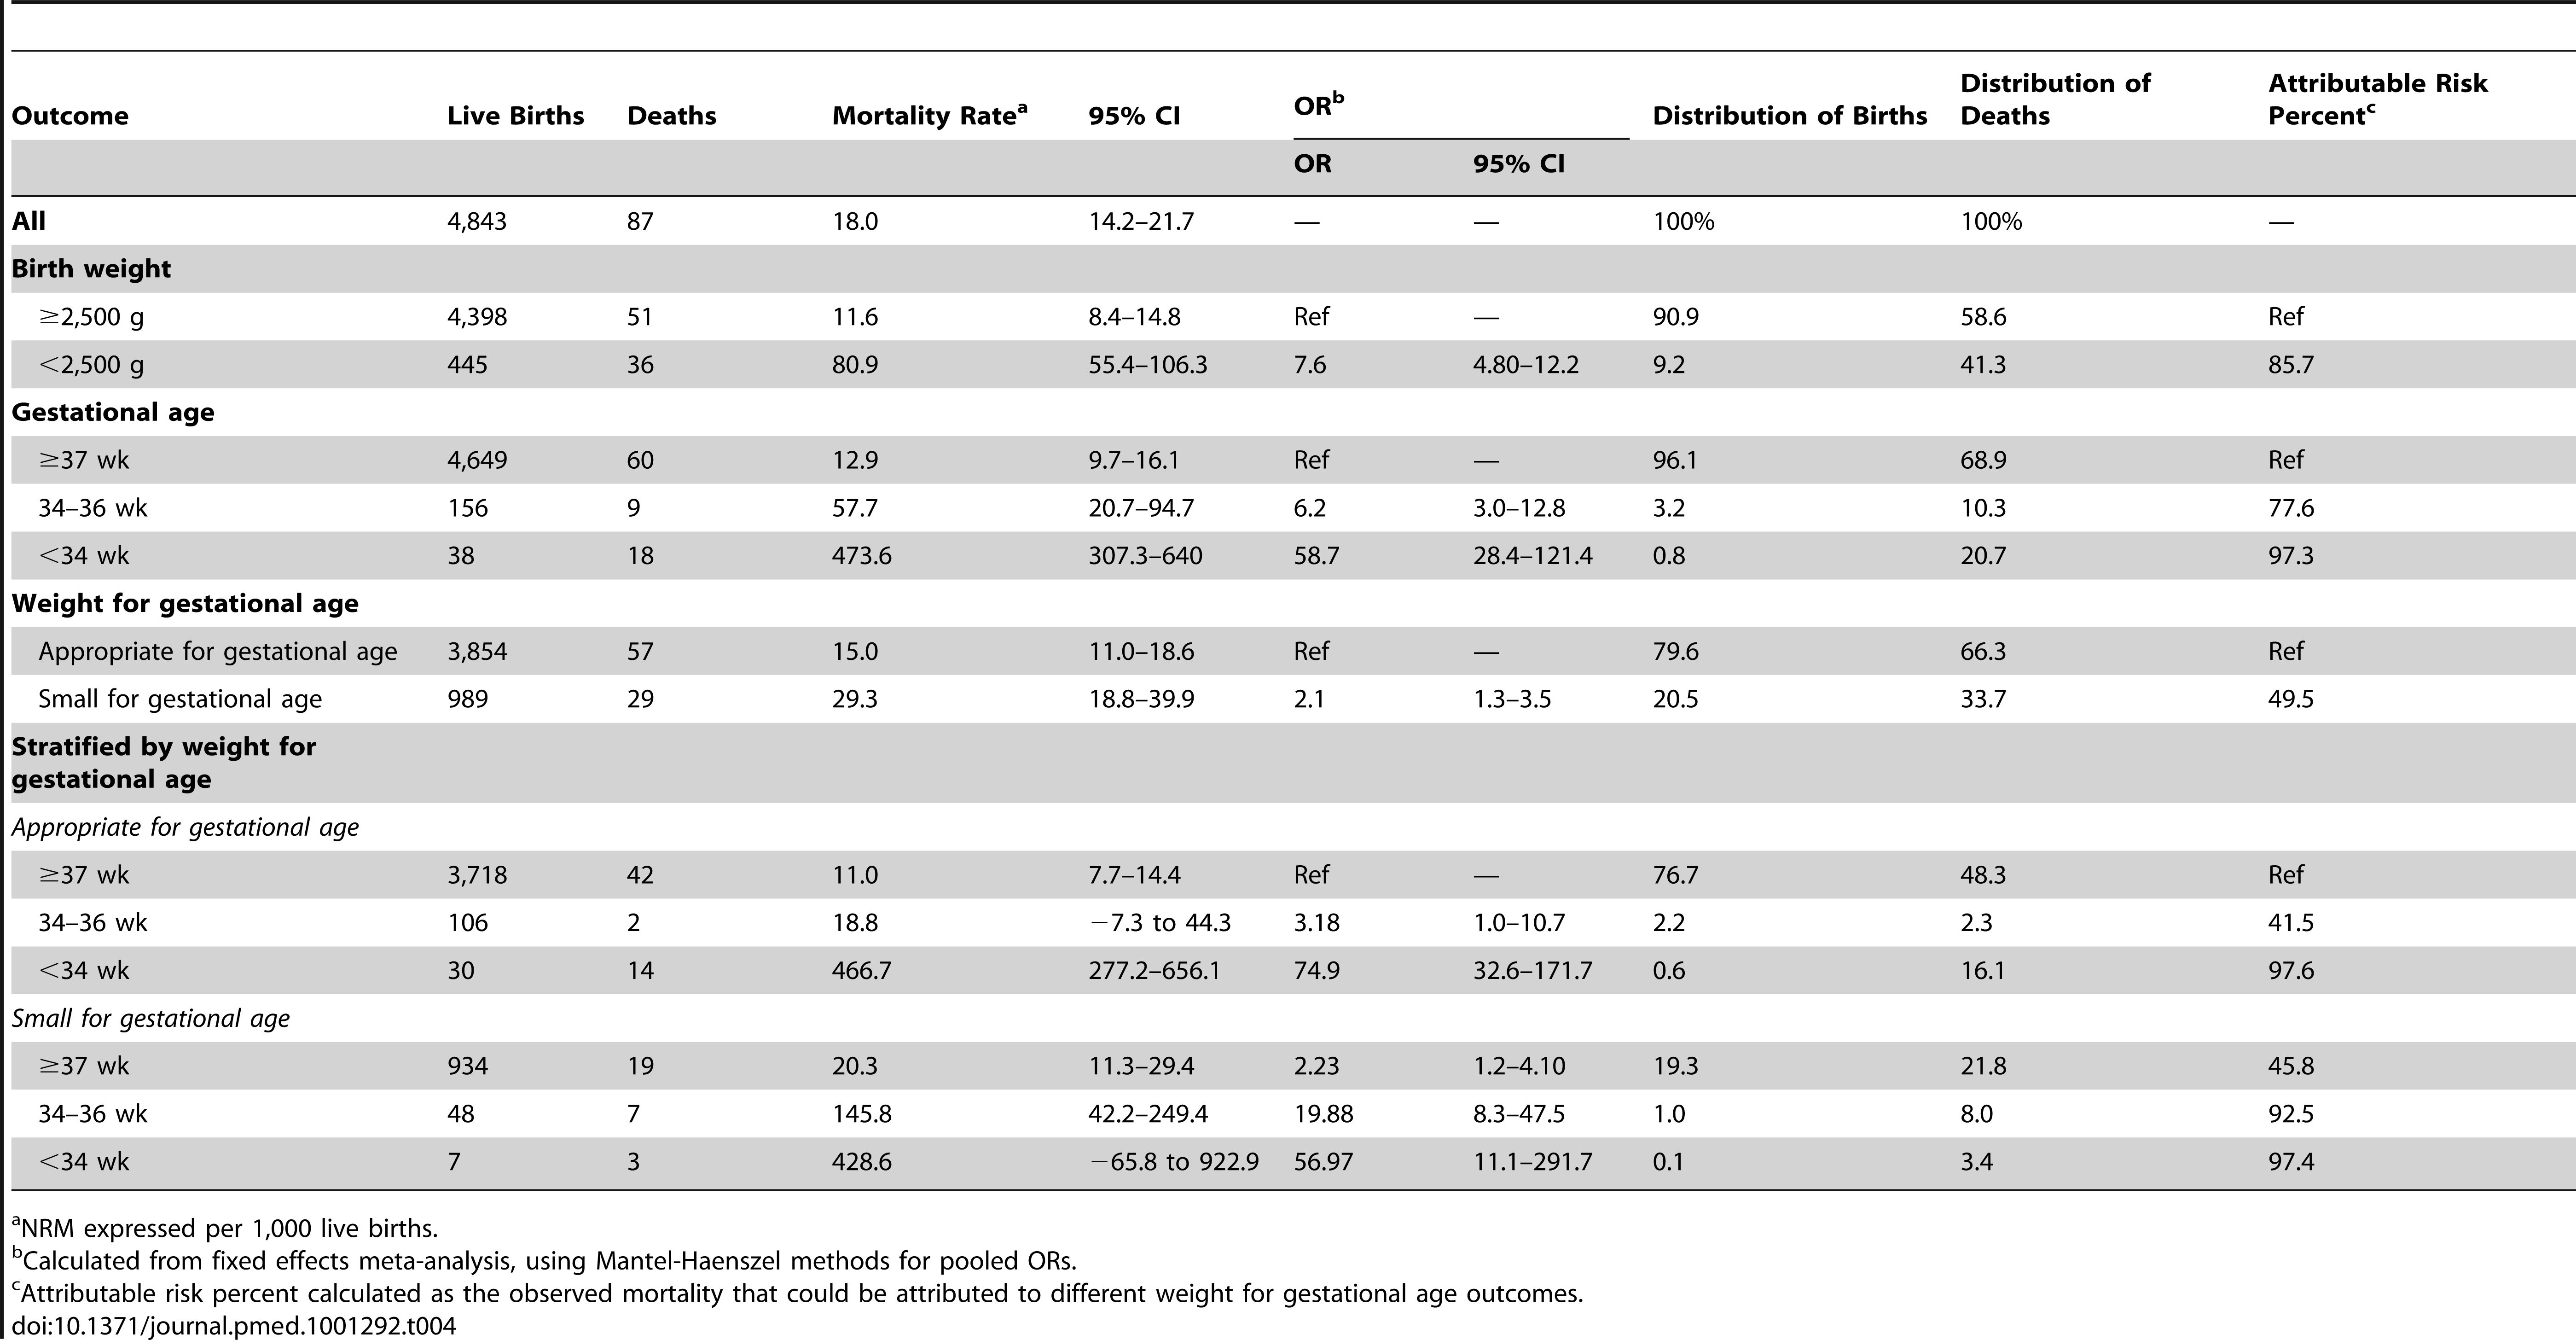 Meta-analysis of neonatal mortality outcomes by birth weight, gestational age, weight for gestational age, and stratified by weight for gestational age.